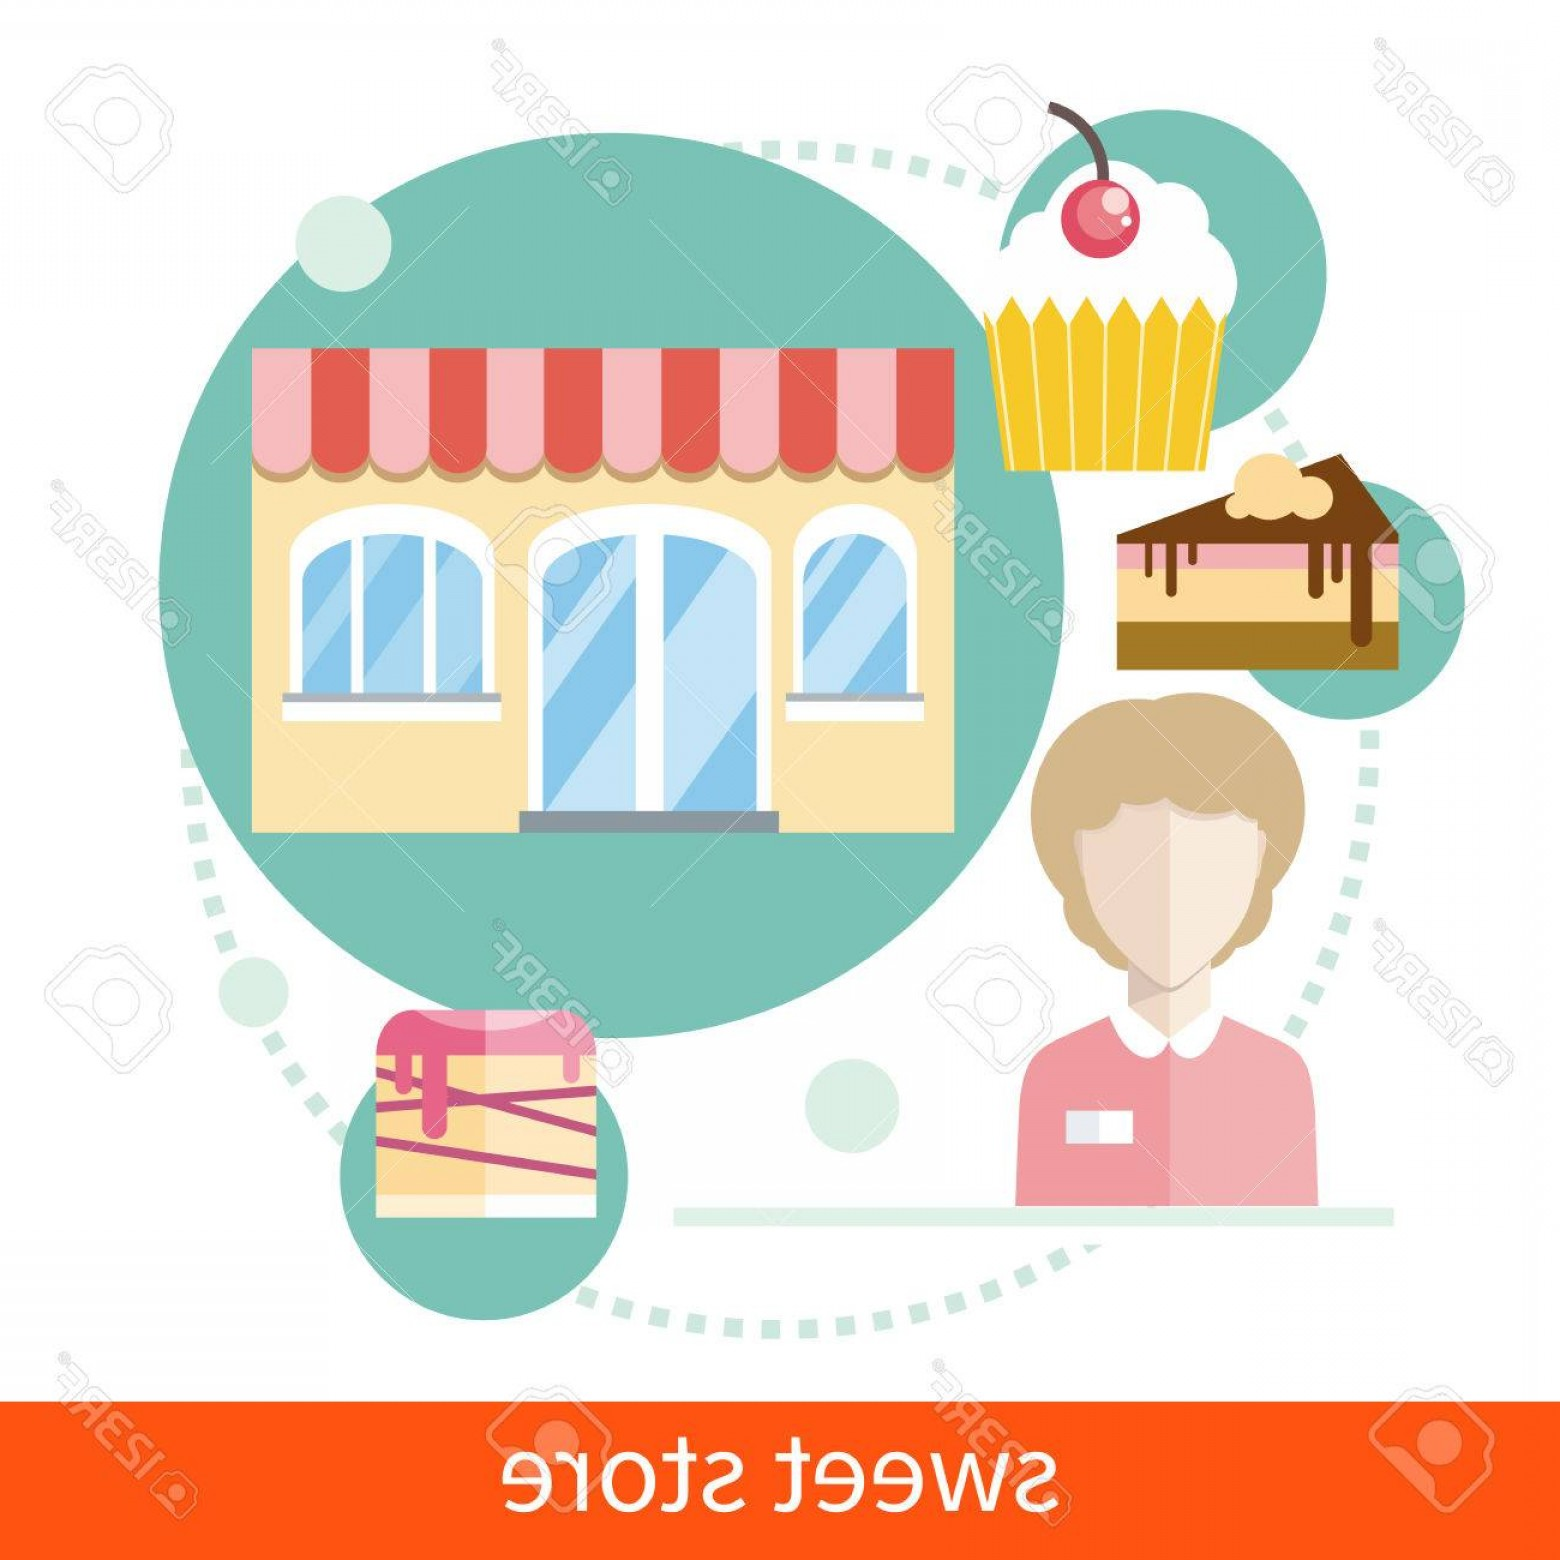 Candy Seller Vector: Photostock Vector Sweet Store Concept In Flat Design With Seller Near Chocolate Muffins Donuts Cakes And Candies Icons